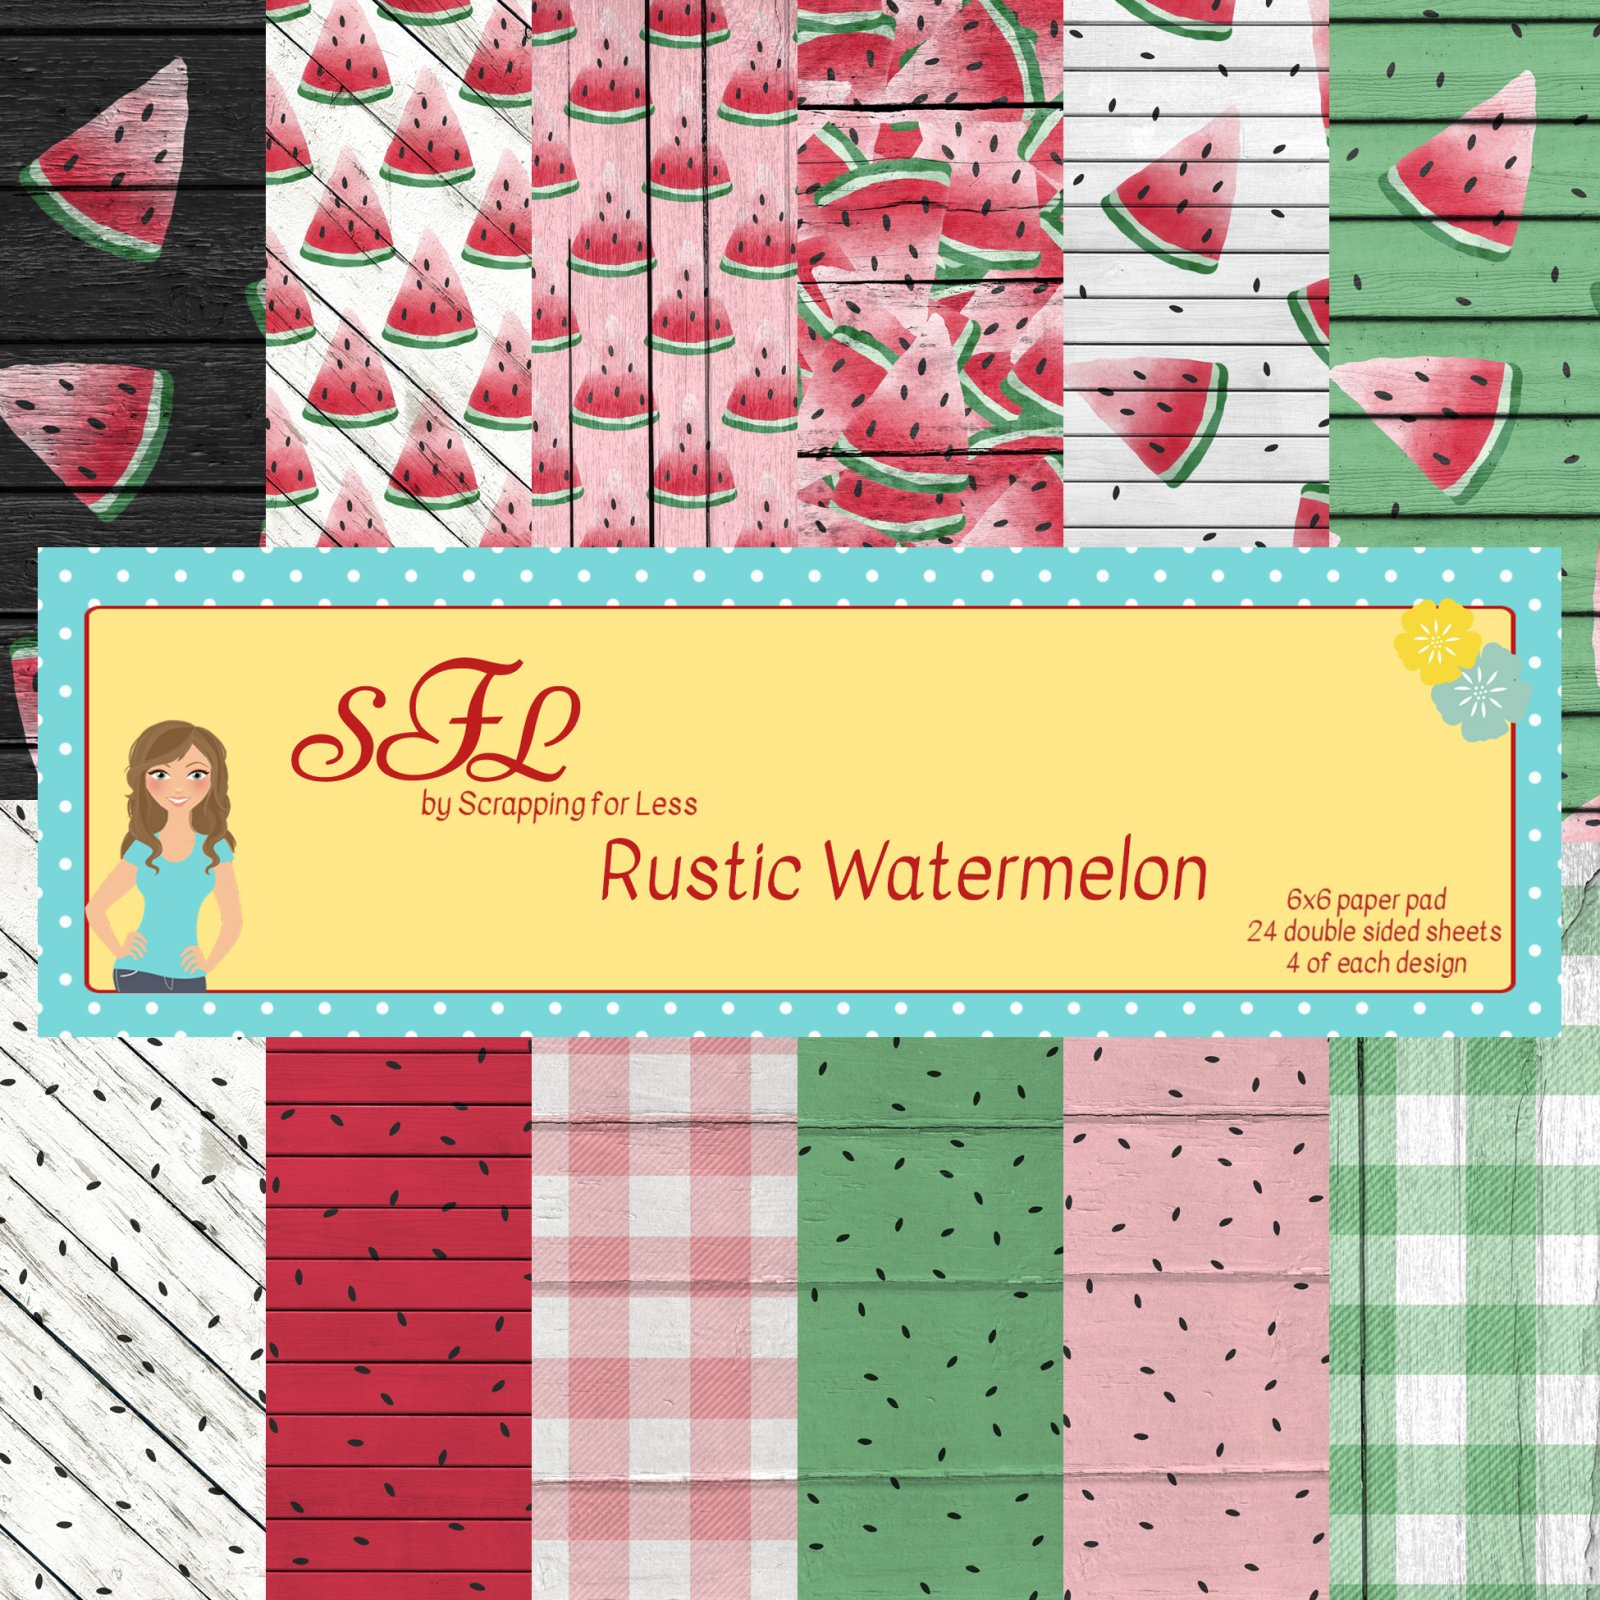 Scrapping for Less Rustic Watermelon 6x6 Paper Pad